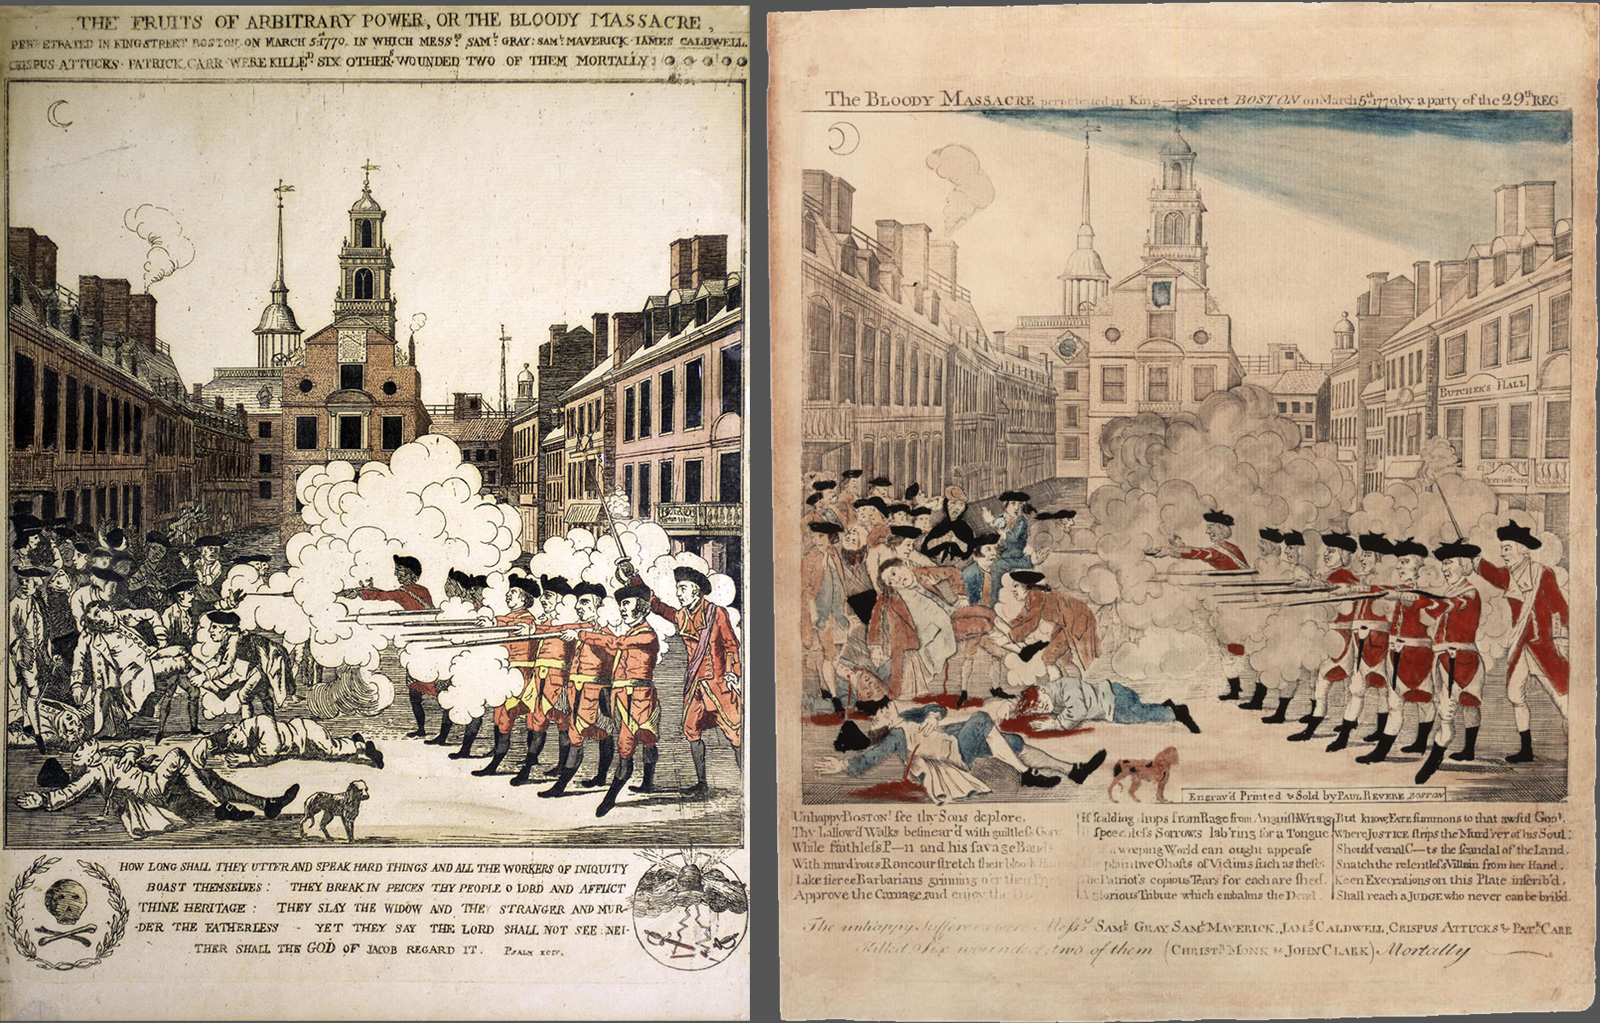 From left:Henry Pelham, The Fruits of Arbitrary Power, or The Bloody Massacre. Engraving, 1770.Paul Revere, The Bloody Massacre perpetrated in King Street Boston on March 5th 1770 by a party of the 29th Regt. Engraving, 1770.